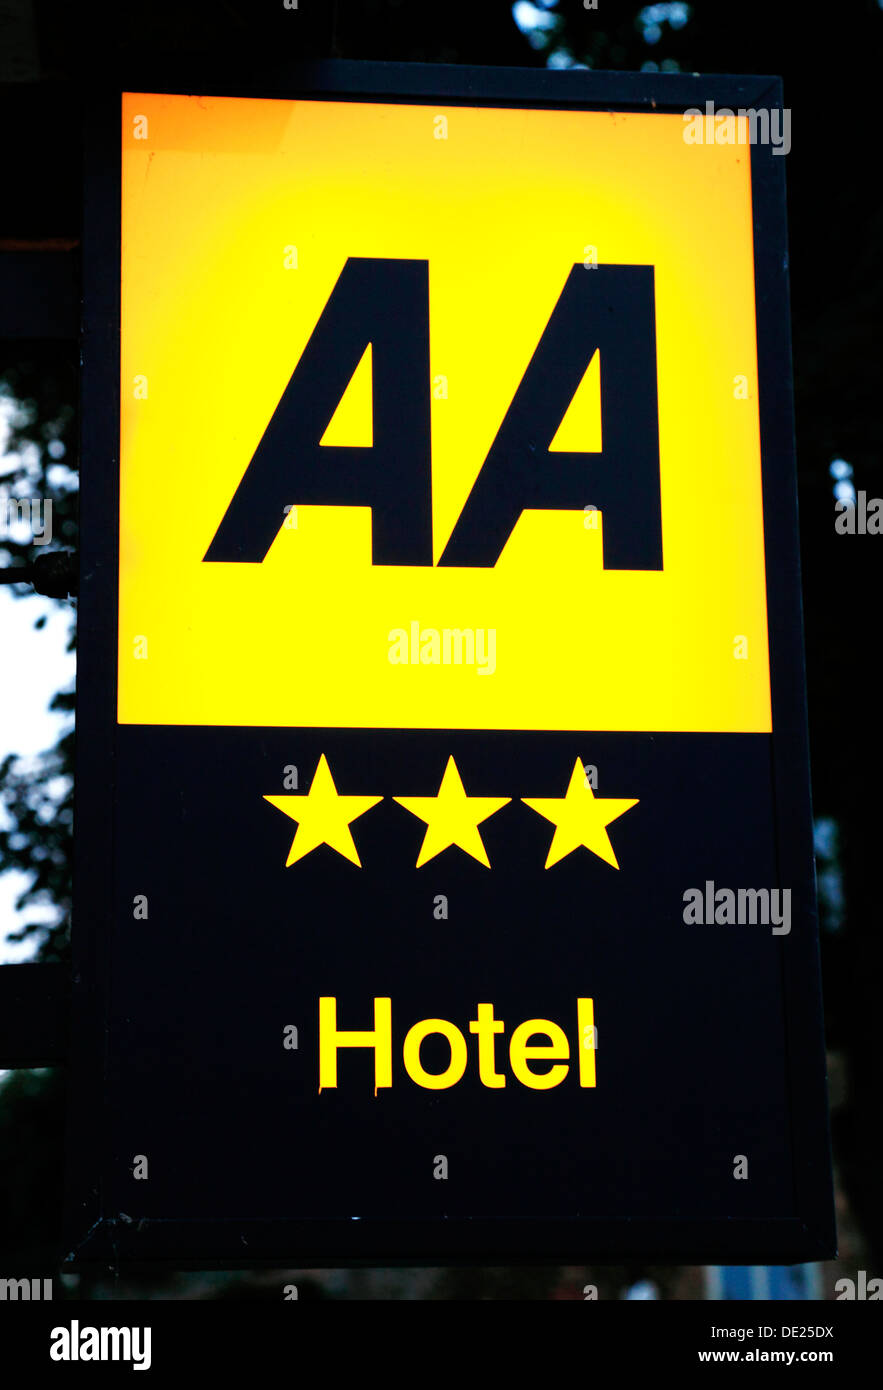 AA 3 Star, stars Hotel Sign 0 UK Photo Stock